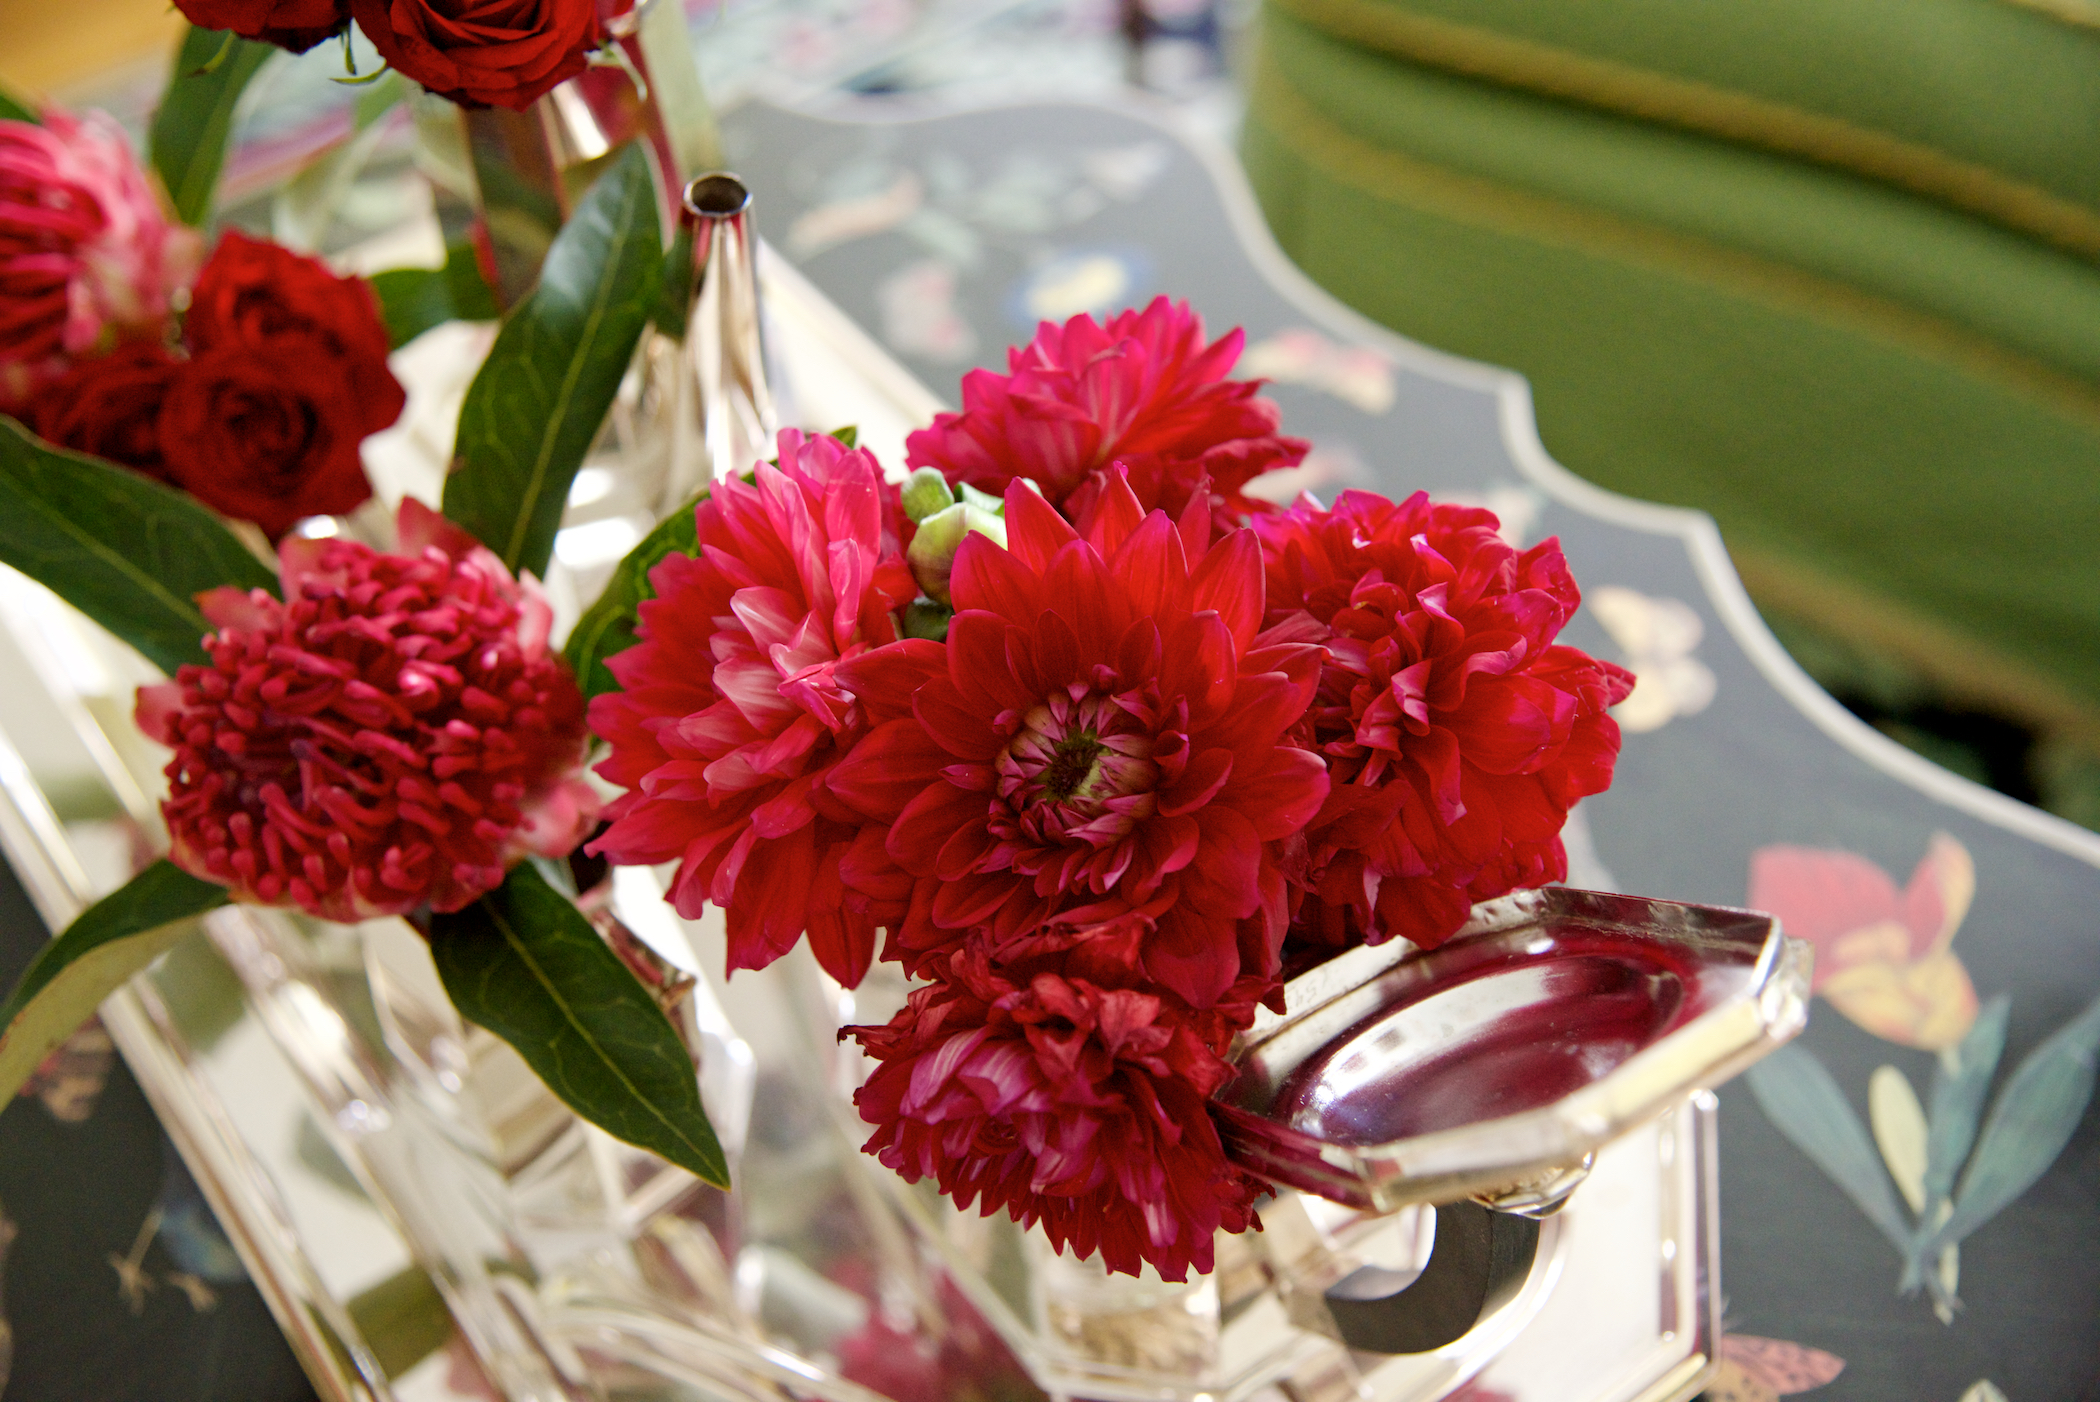 Red dahlias and roses adorn this silver tea set